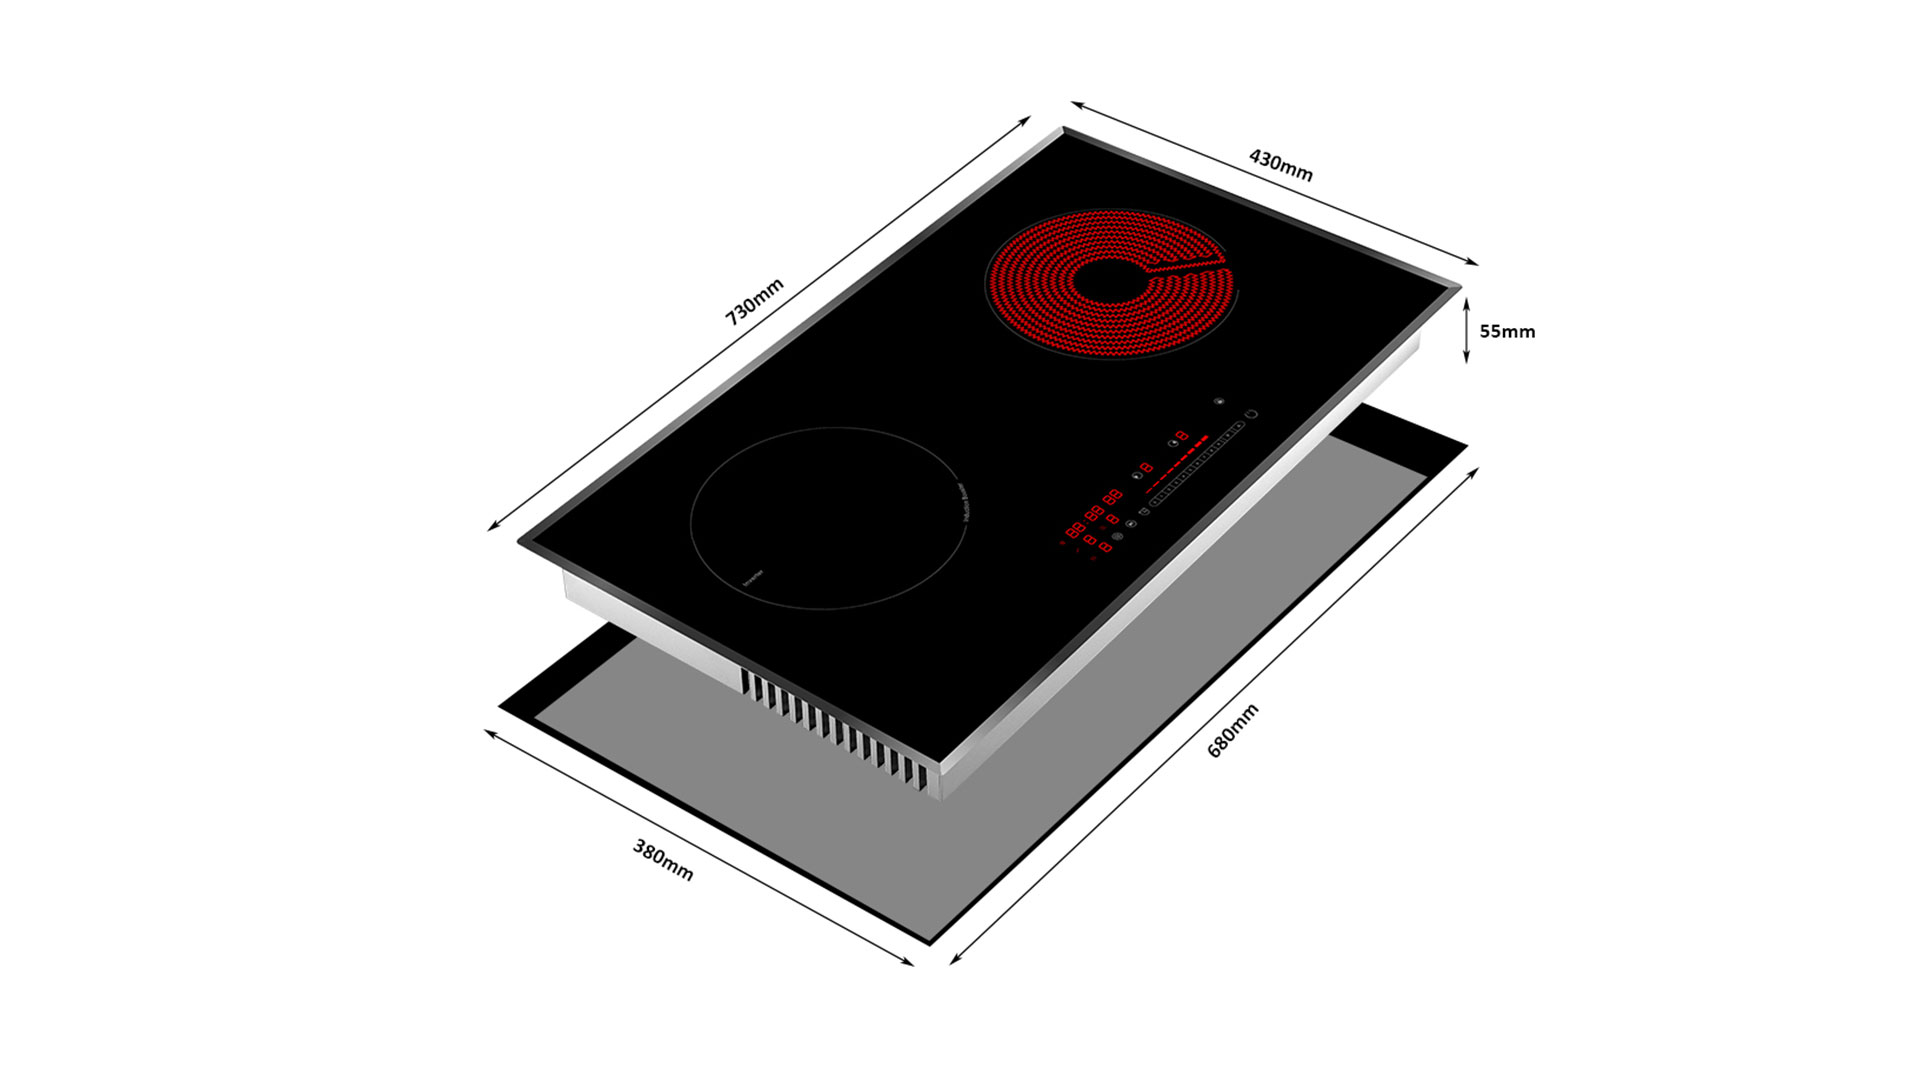 Produsen Desain Asli Cina Shenzhen H-One Half Bridge Induction Technology Built-In Horizontal Two Burner Hybrid Induction Cooktop 8223-255